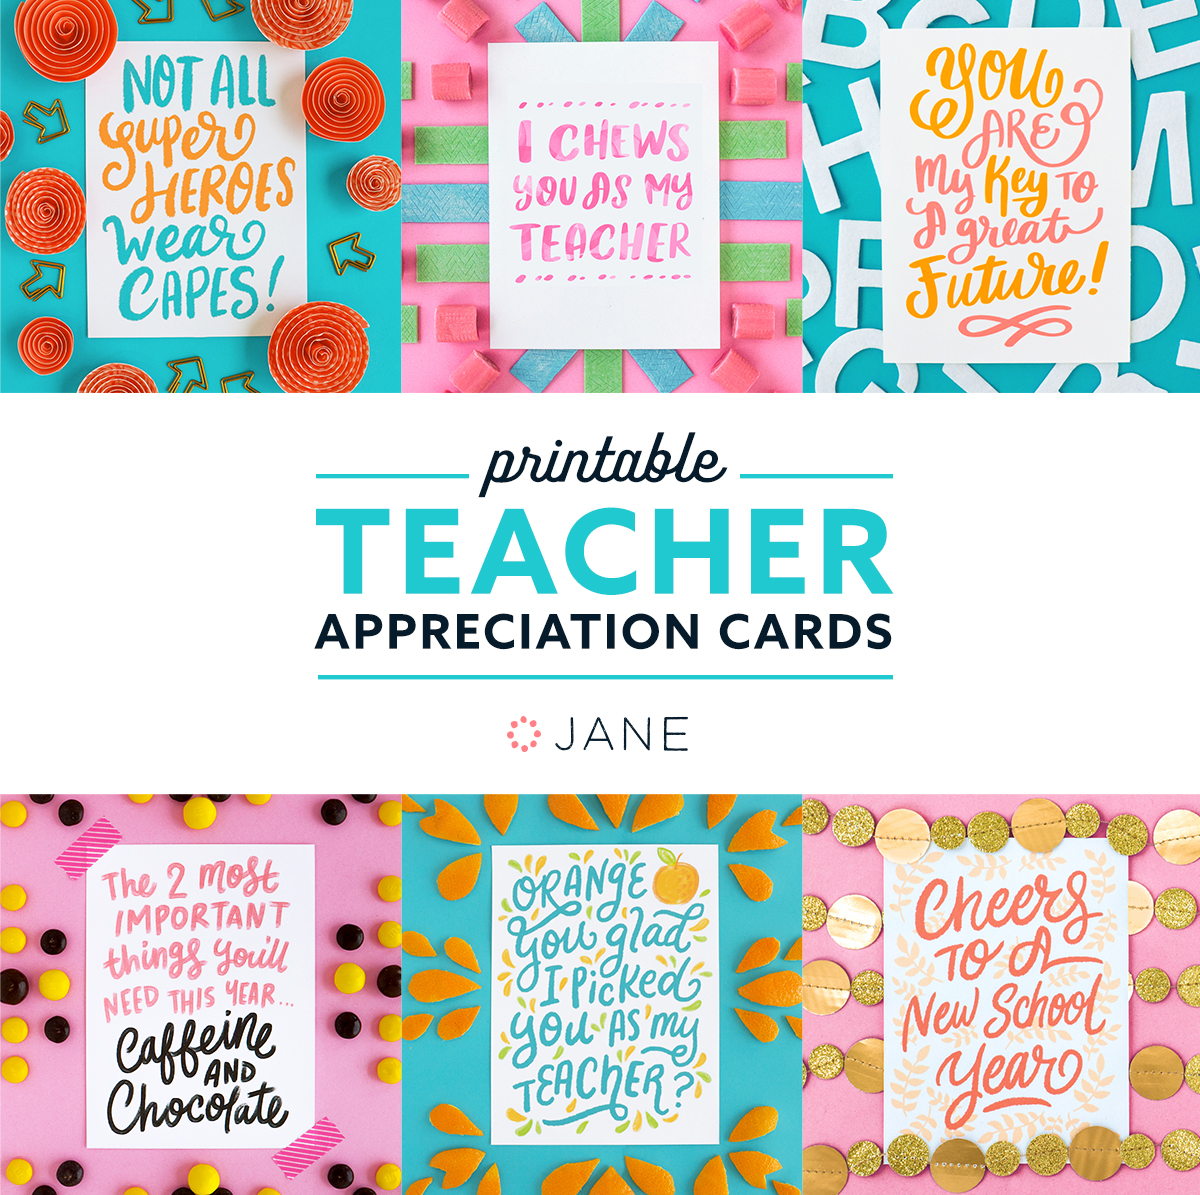 printables · Jane Blog